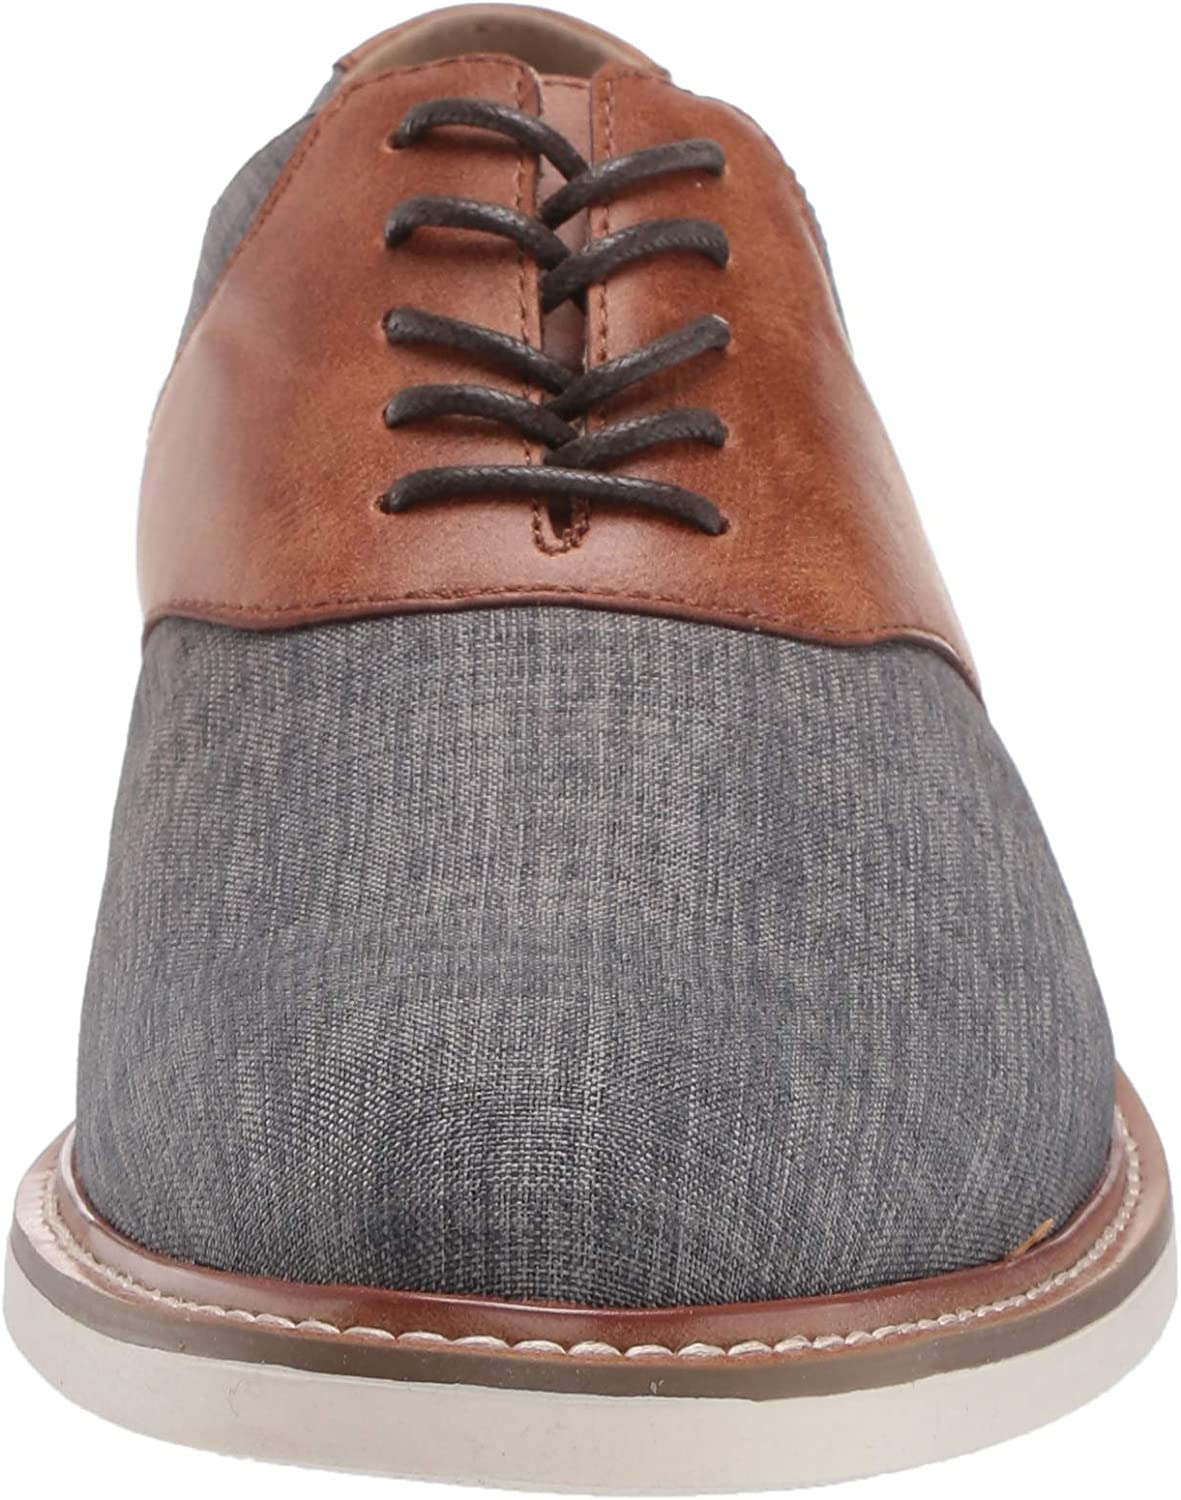 Details about  /Unlisted by Kenneth Cole Men/'s Jimmie Lace Up C Oxford